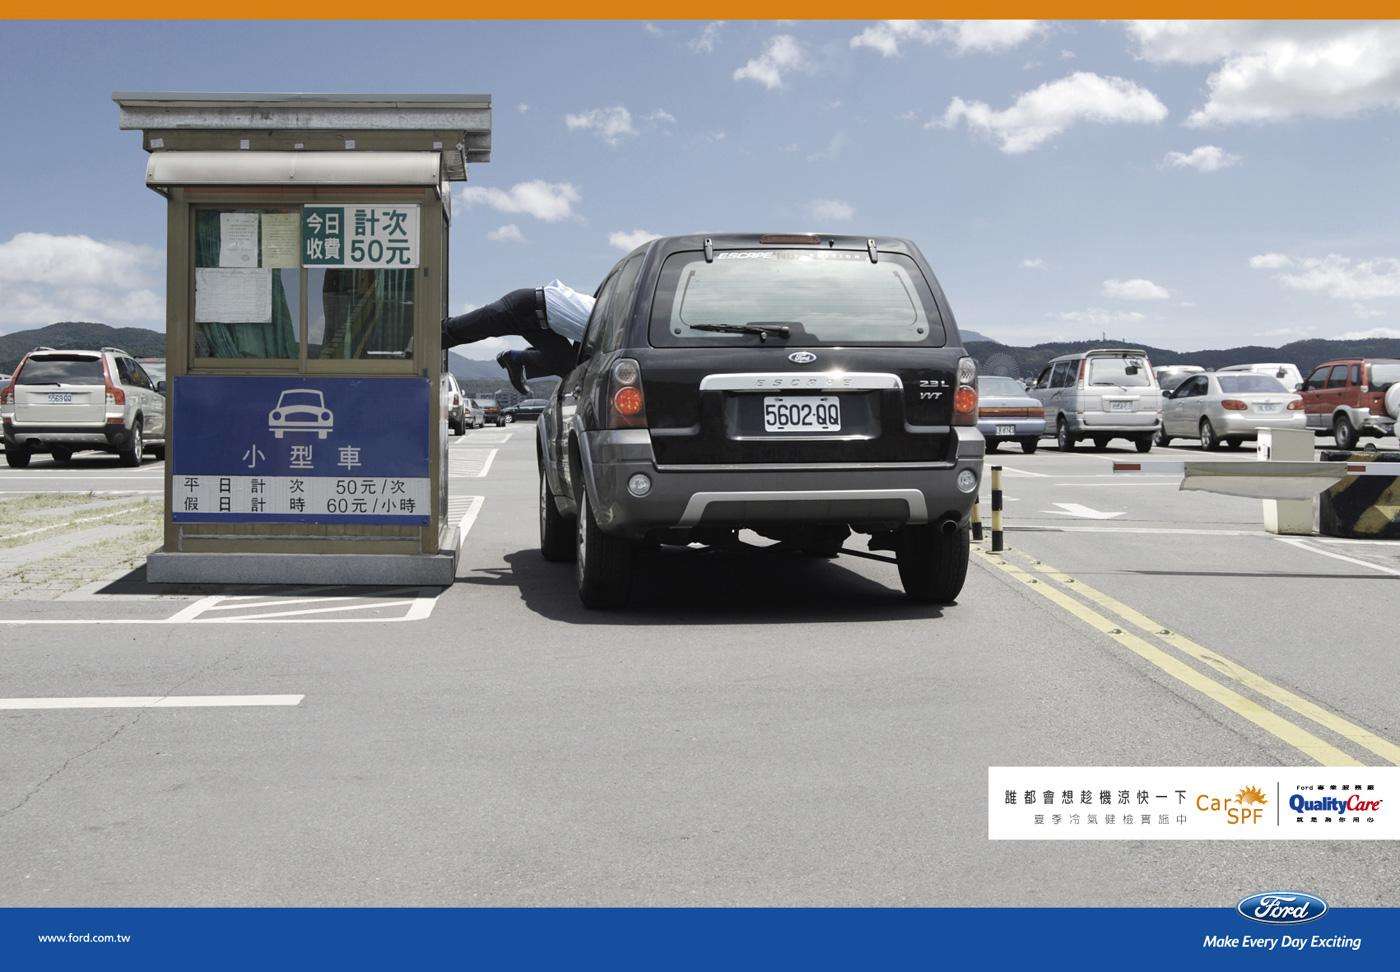 Ford Print Ad -  Summer Air Condition Campaign, Parking Lot